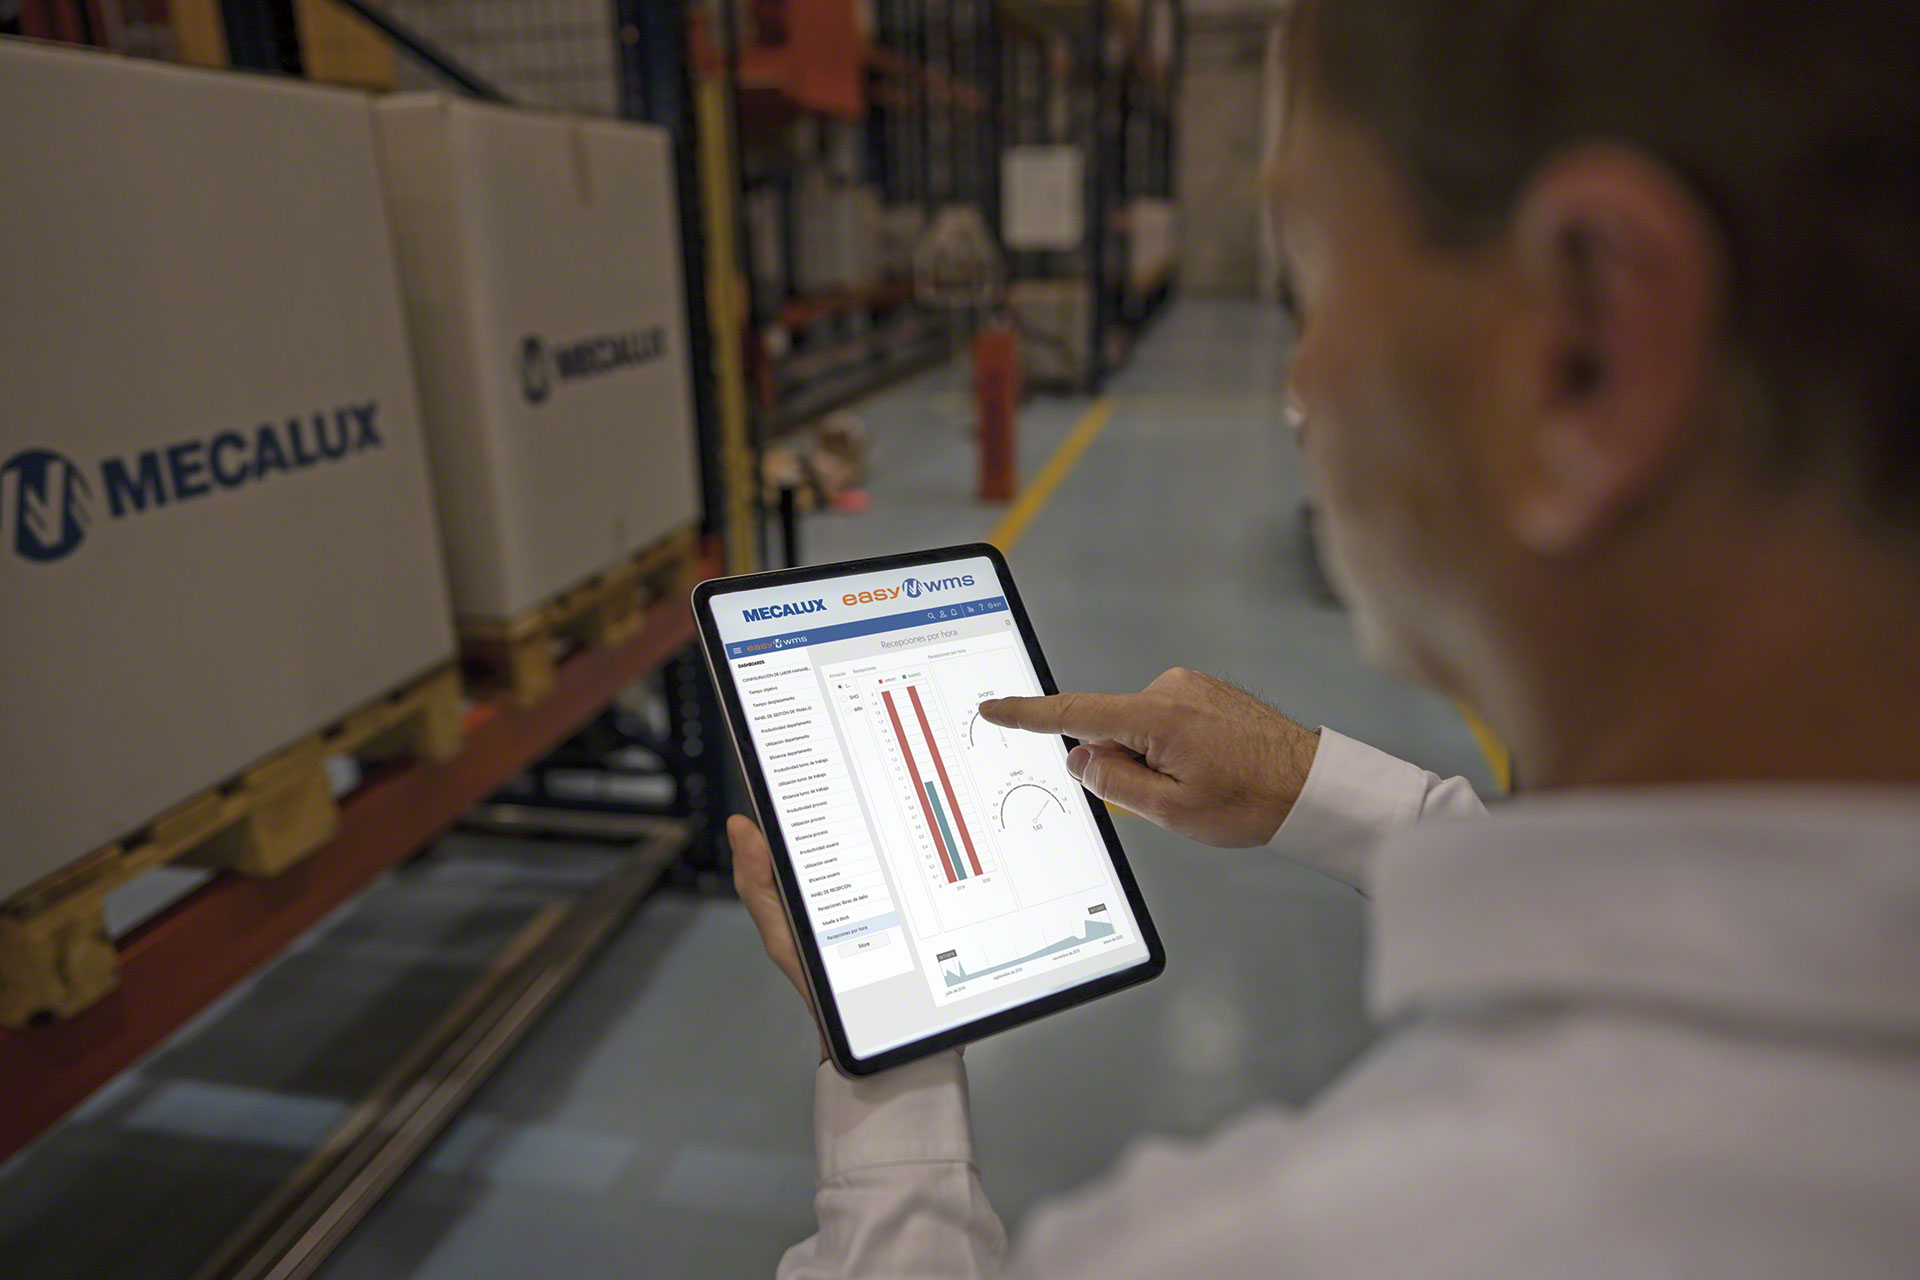 The smart supply chain incorporates big data to analyze the throughput of warehouse operations in real time